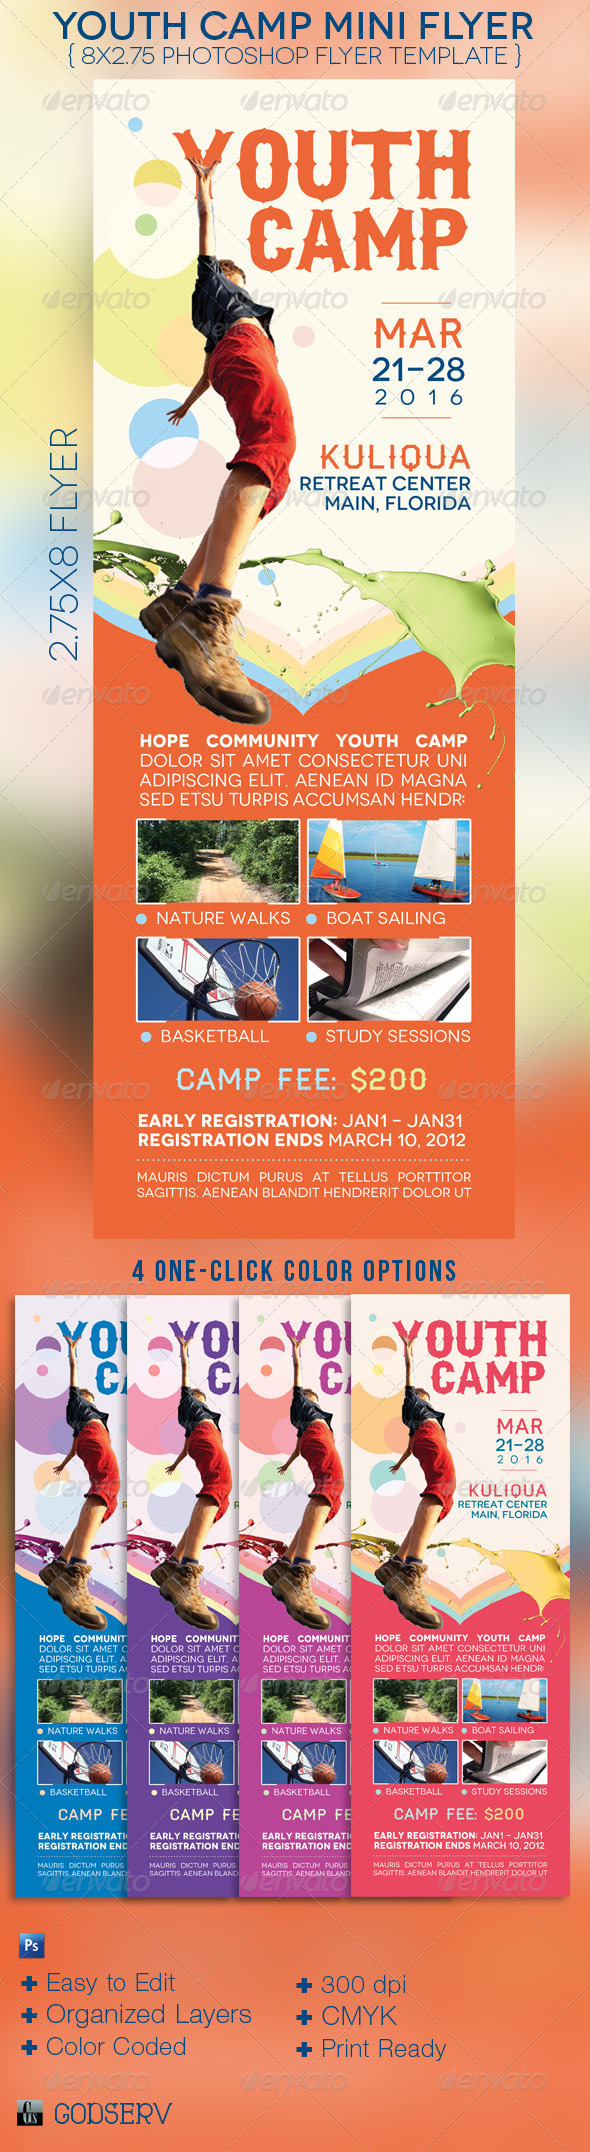 Youth Camp Mini Flyer Template By Michael Taylor Via Behance - Mini brochure template